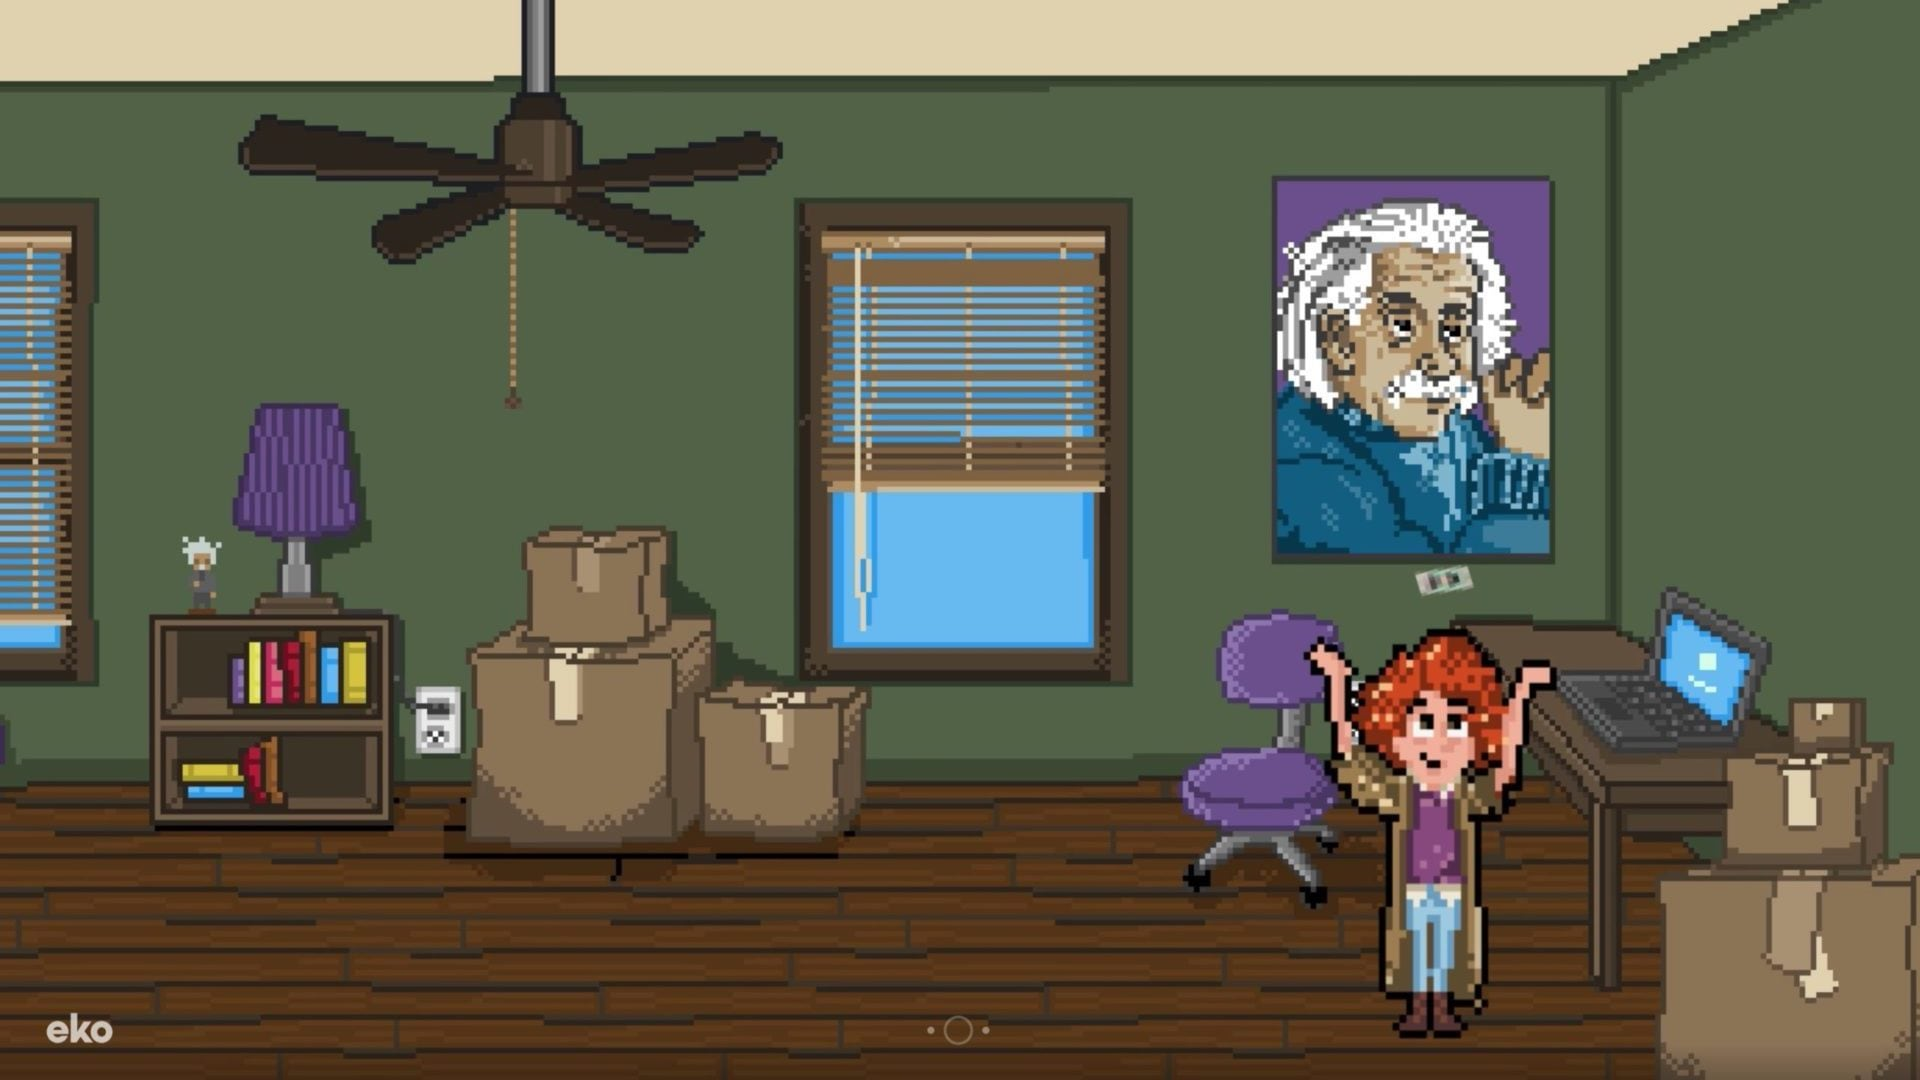 Max Einstein, from Rebels with a Cause, in his 8-bit bedroom